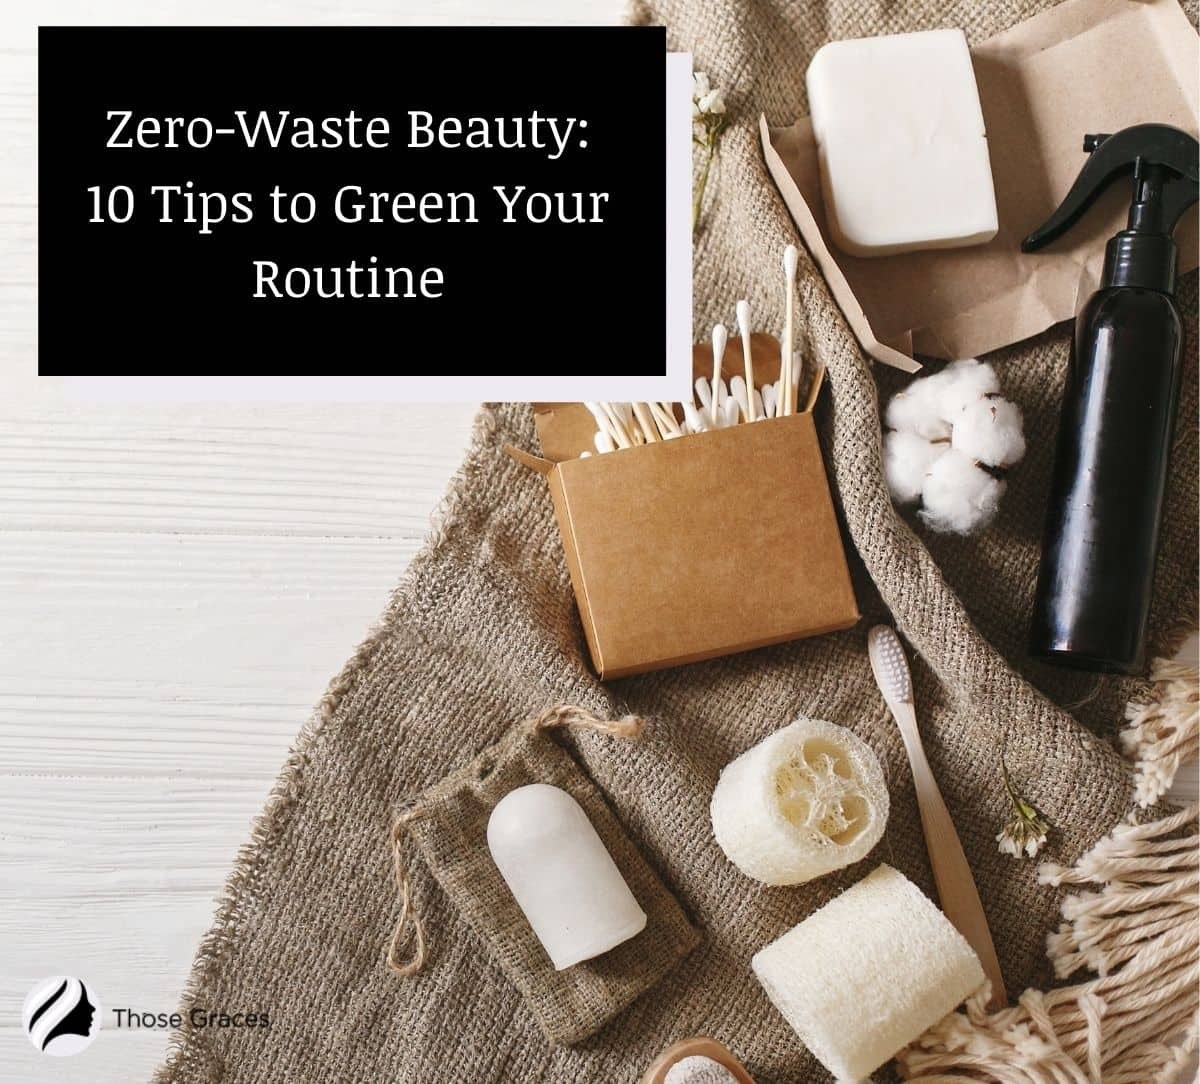 zero-waste beauty products on a cloth